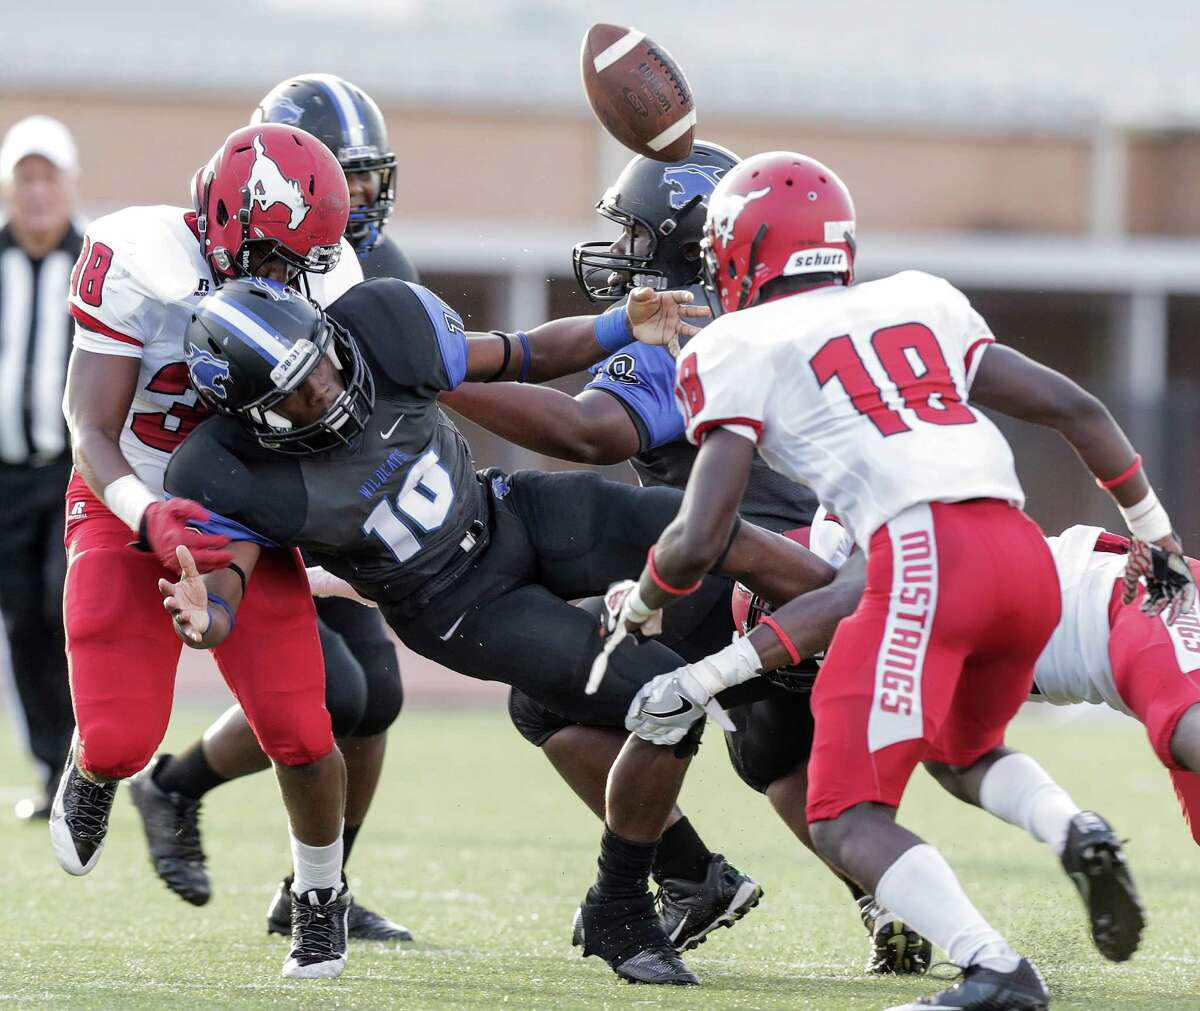 Dekaney's Jerry Wells (10) fumbles the ball after being hit against North Shore on Thursday, Aug. 25, 2016, in Spring. Dekaney recovered the football.